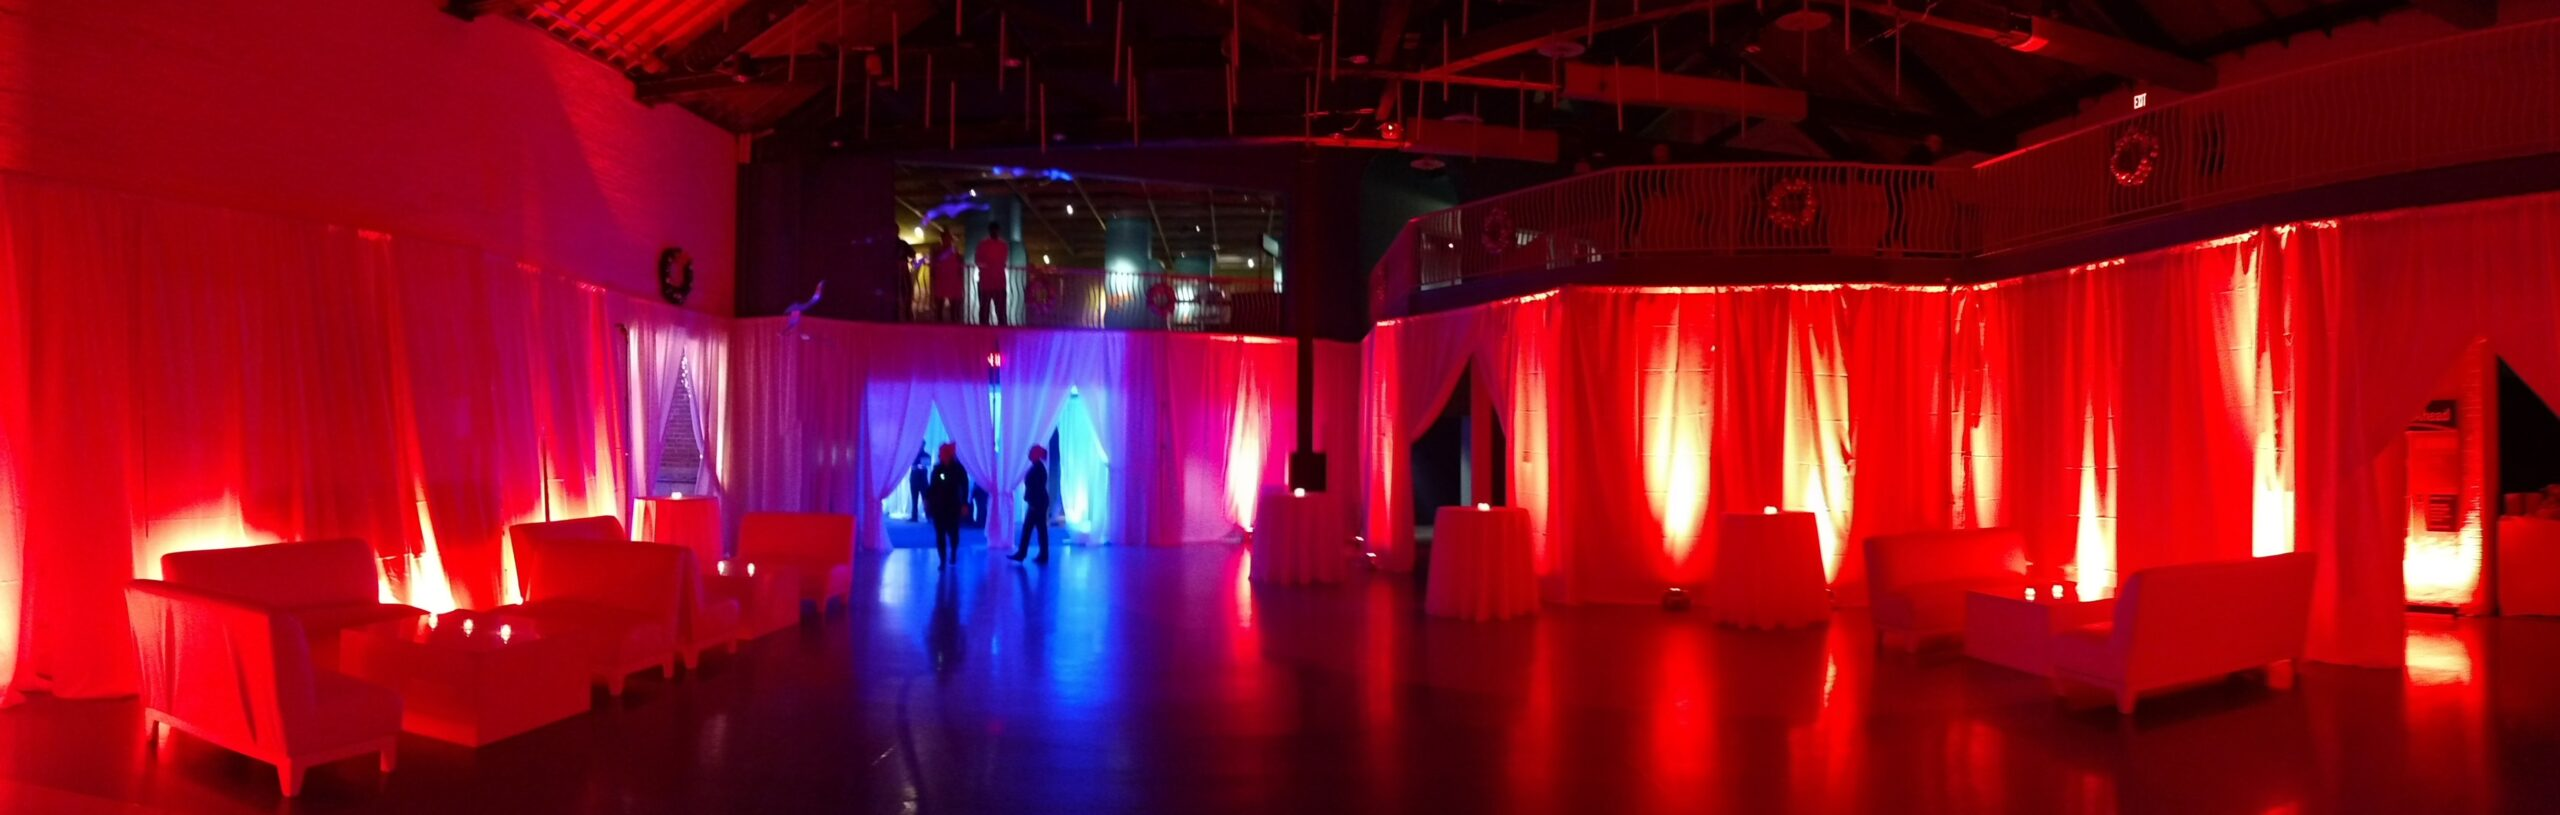 Maritime Aquarium Holiday Parties Norwalk Uplighting Lounge